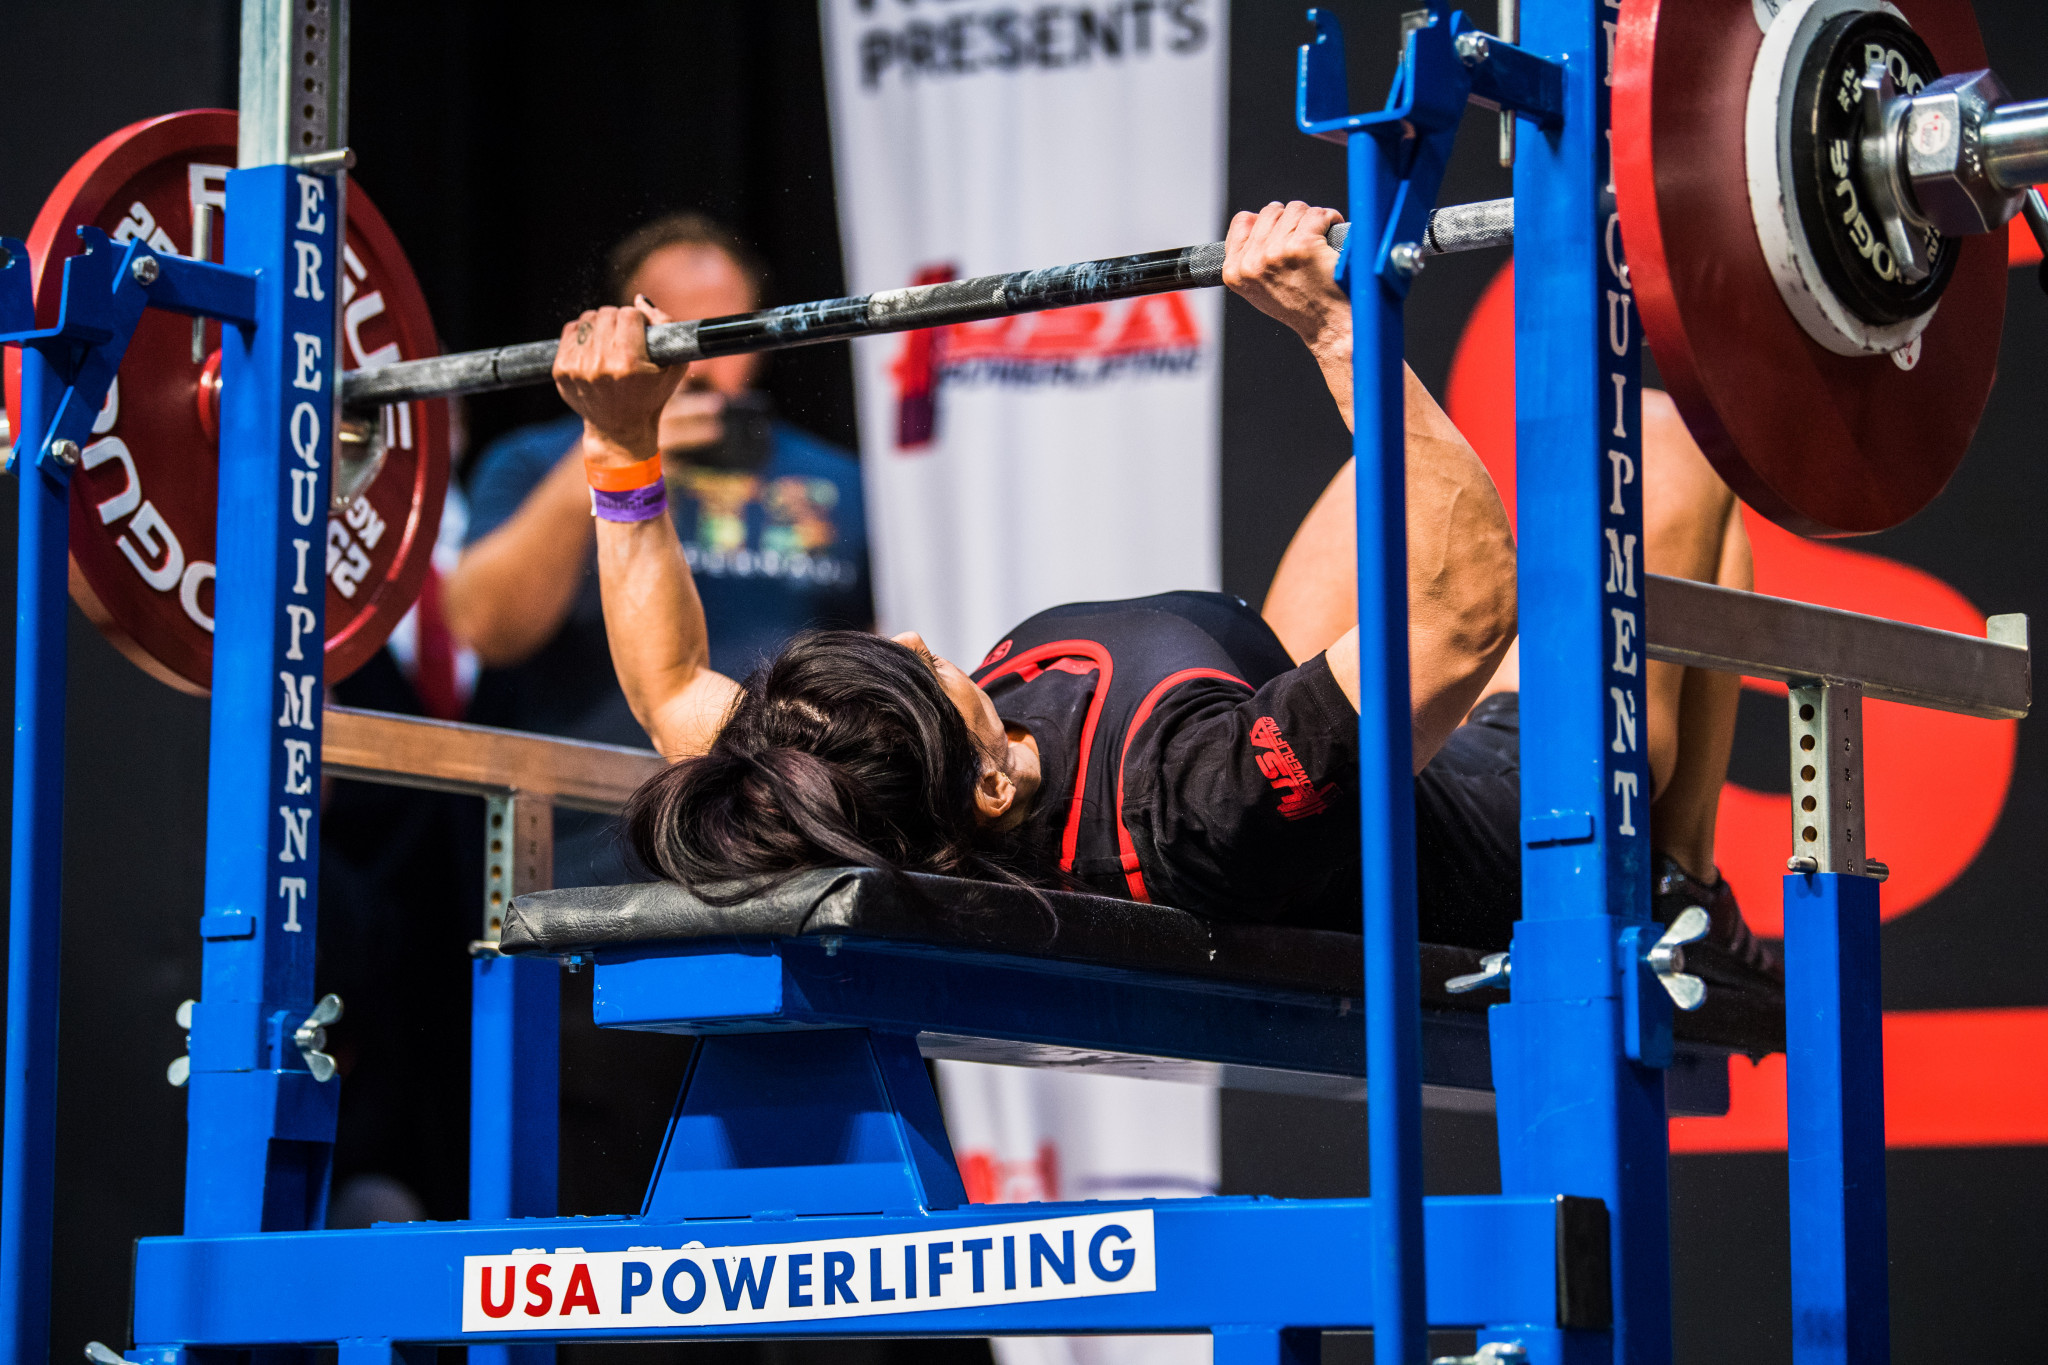 USA Powerlifting organises nearly 400 competition per year and carries out 2,000 drugs tests ©USAPL